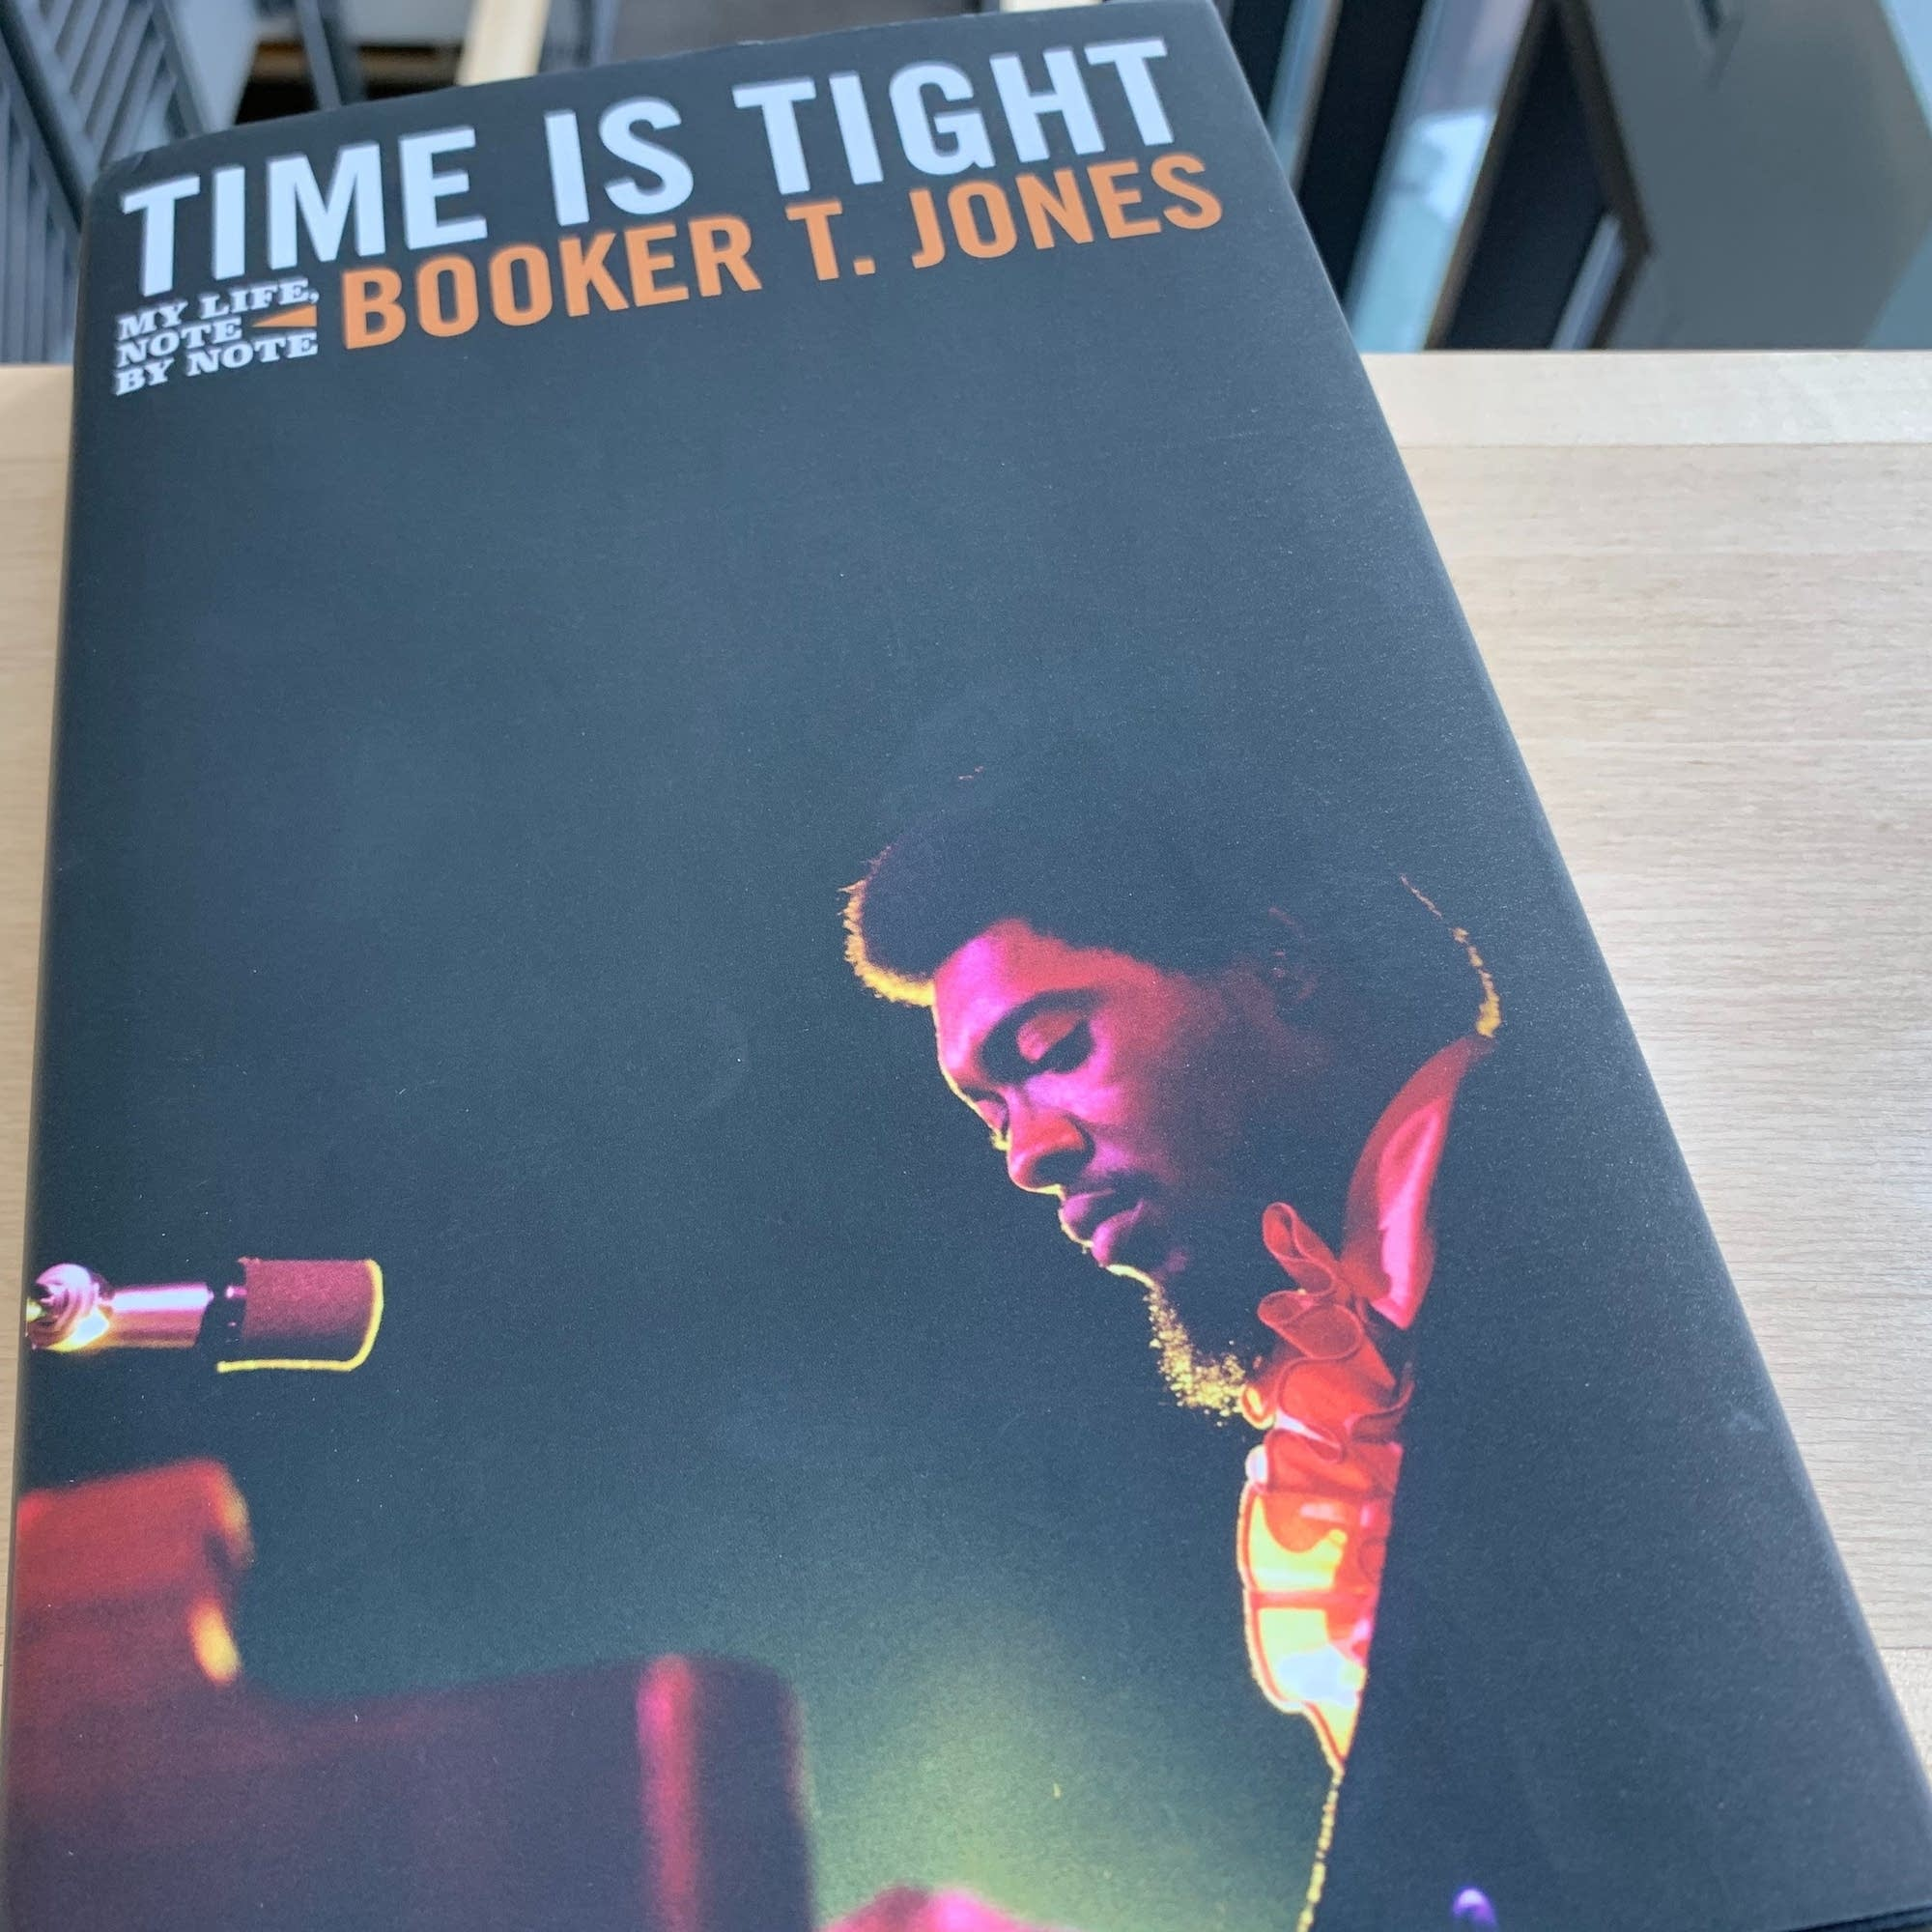 Booker T. Jones's memoir 'Time is Tight.'